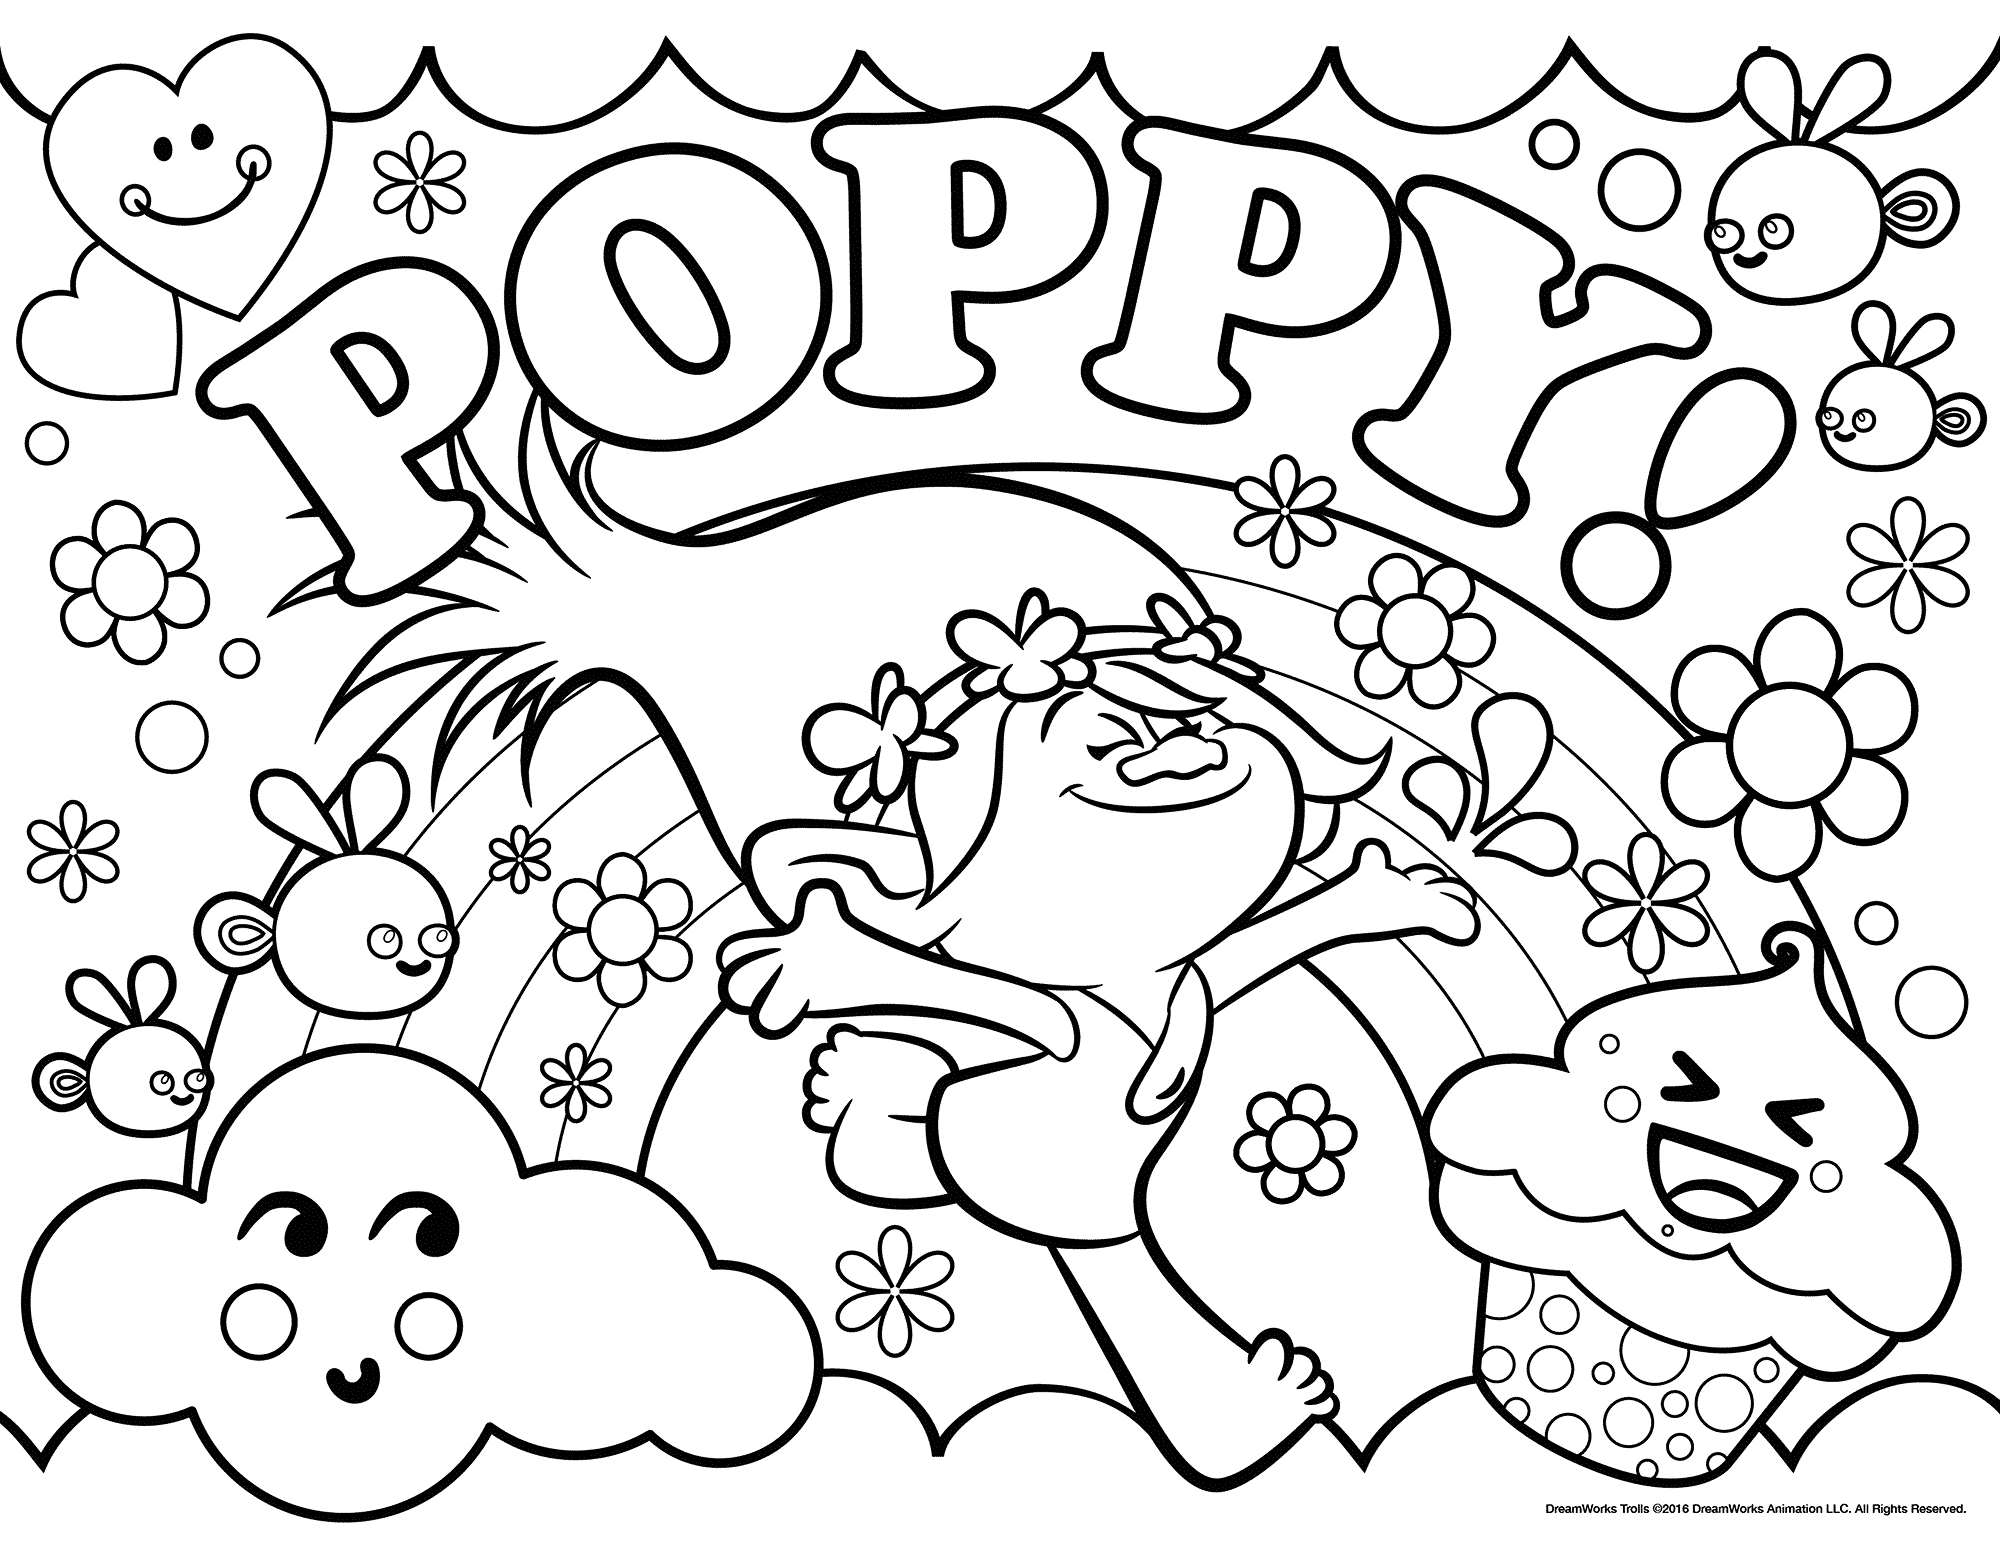 Poppy troll coloring page trolls movie coloring pages best coloring pages for kids